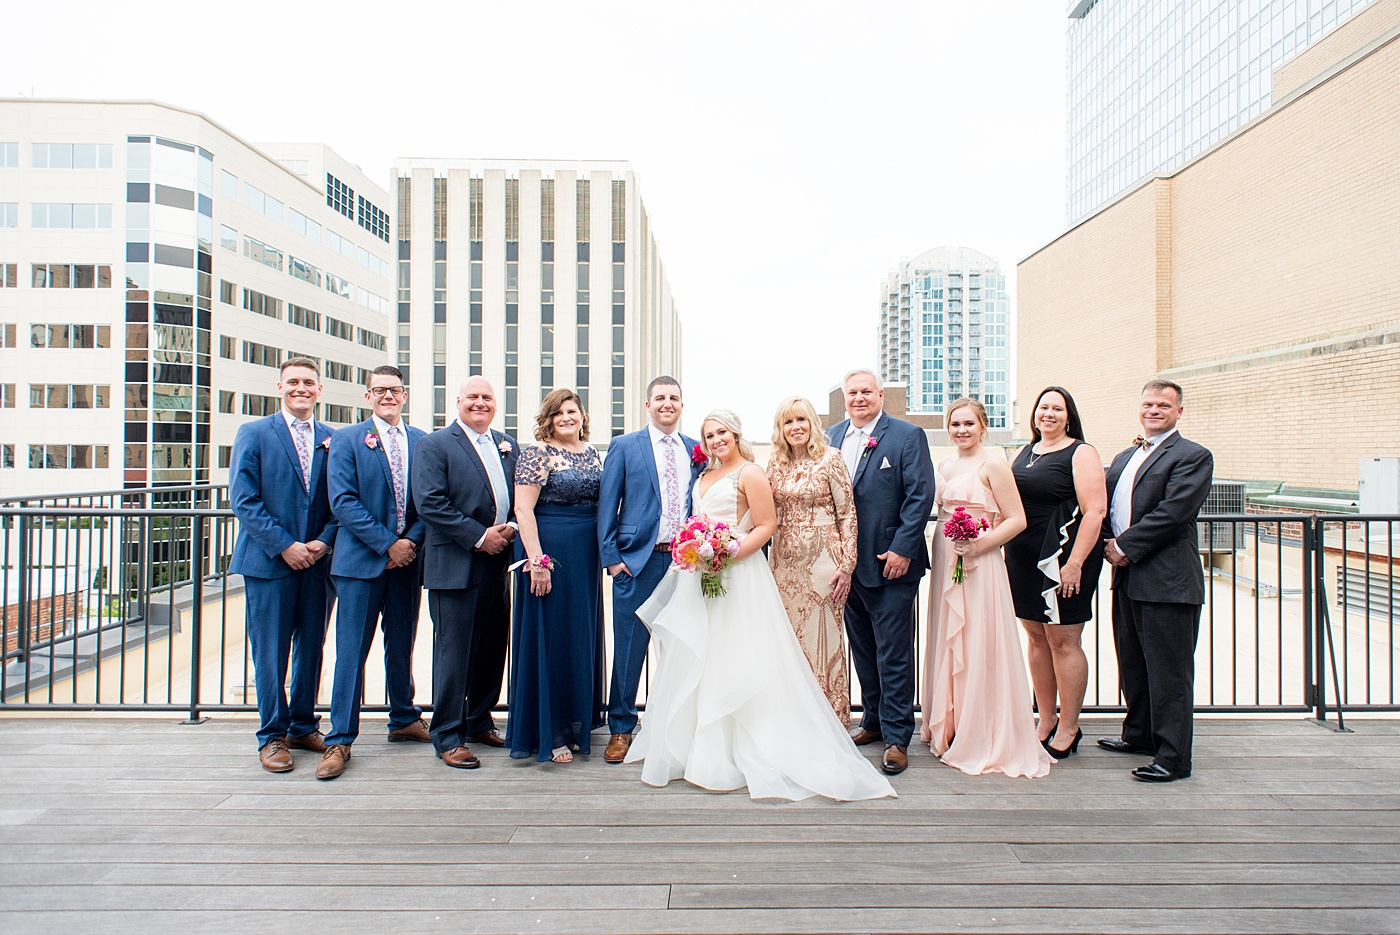 Raleigh wedding photographer, Mikkel Paige Photography, pictures of mismatched pink bridesmaids + groomsmen in blue suits with floral ties in downtown Raleigh, North Carolina at the event venue The Stockroom at 230, The Glass Box, and capital building. Their hot pink peony + carnation bouquets were perfect for a spring May celebration. #MikkelPaige #DowntownRaleigh #RaleighWedding #RaleighVenue #TheStockroomat230 #capitalcity #peonies #carnations #pinkbridesmaids #bridalpartyphotos #weddingparty